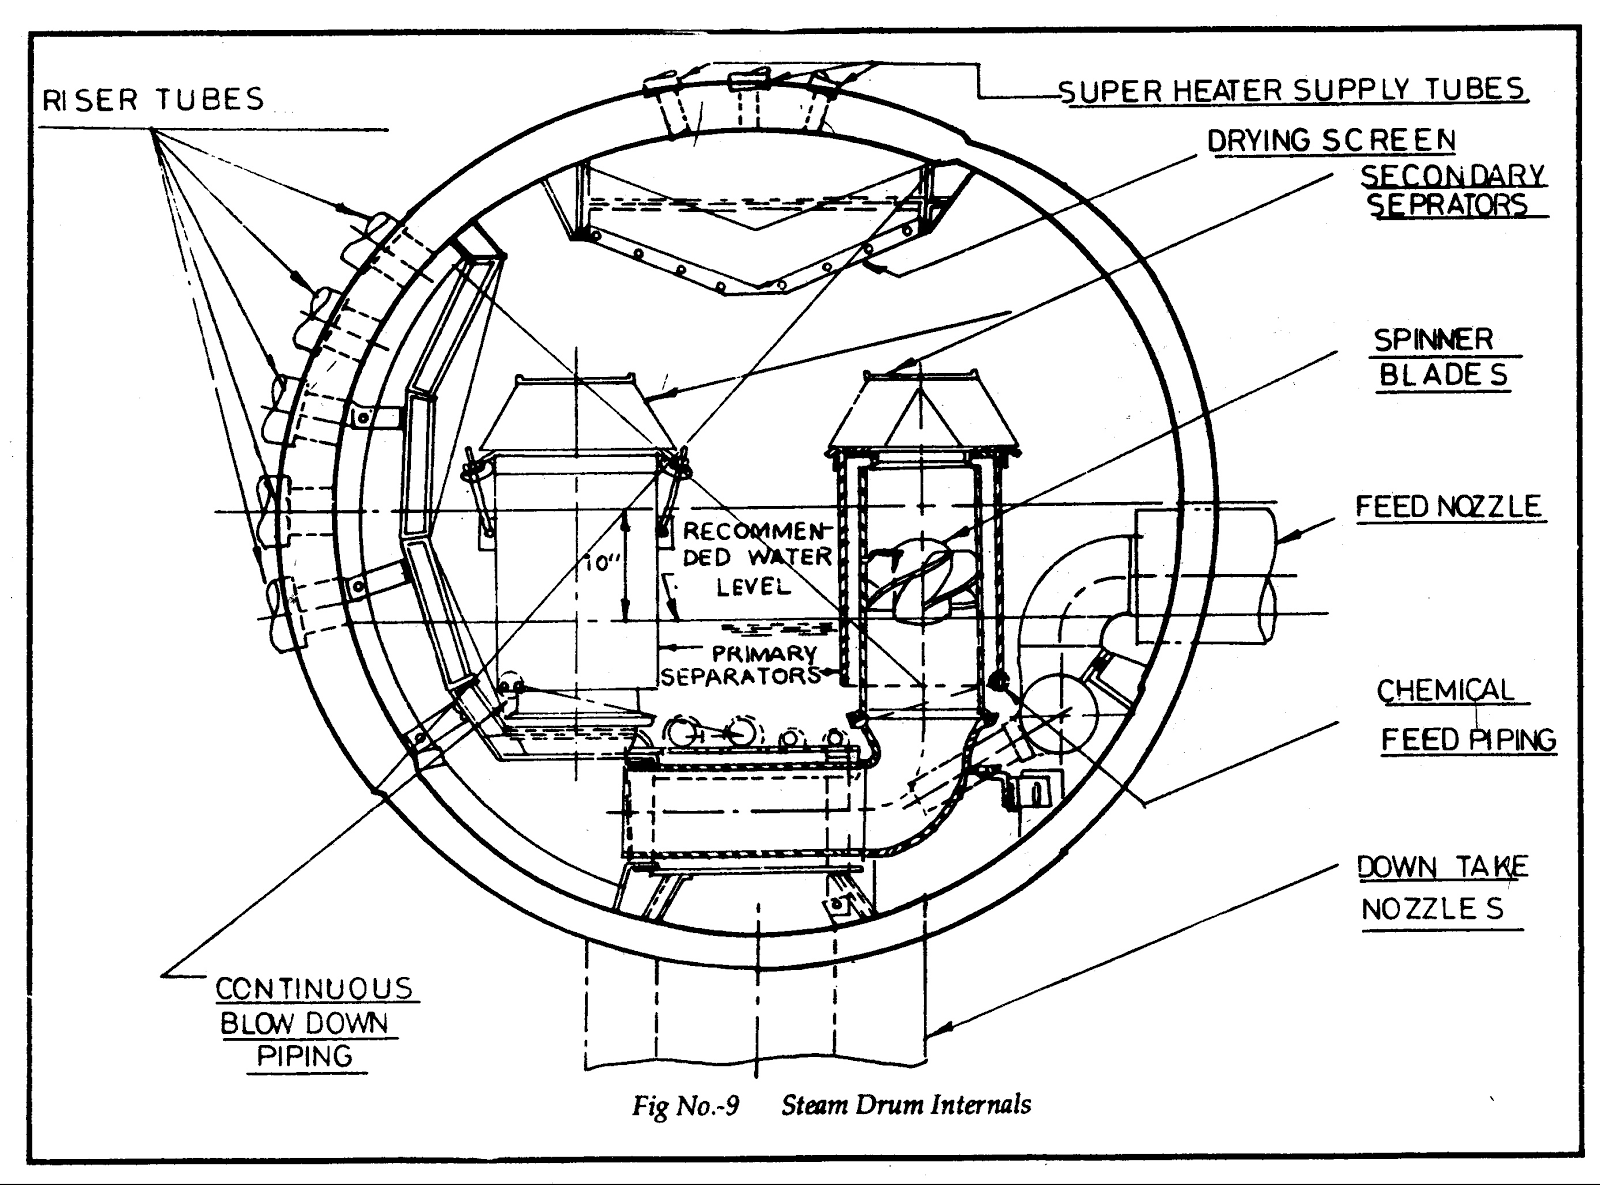 Chemical Furnace Schematic Safeguard Supervisory System Fsss All About Power Plant Drum Internals